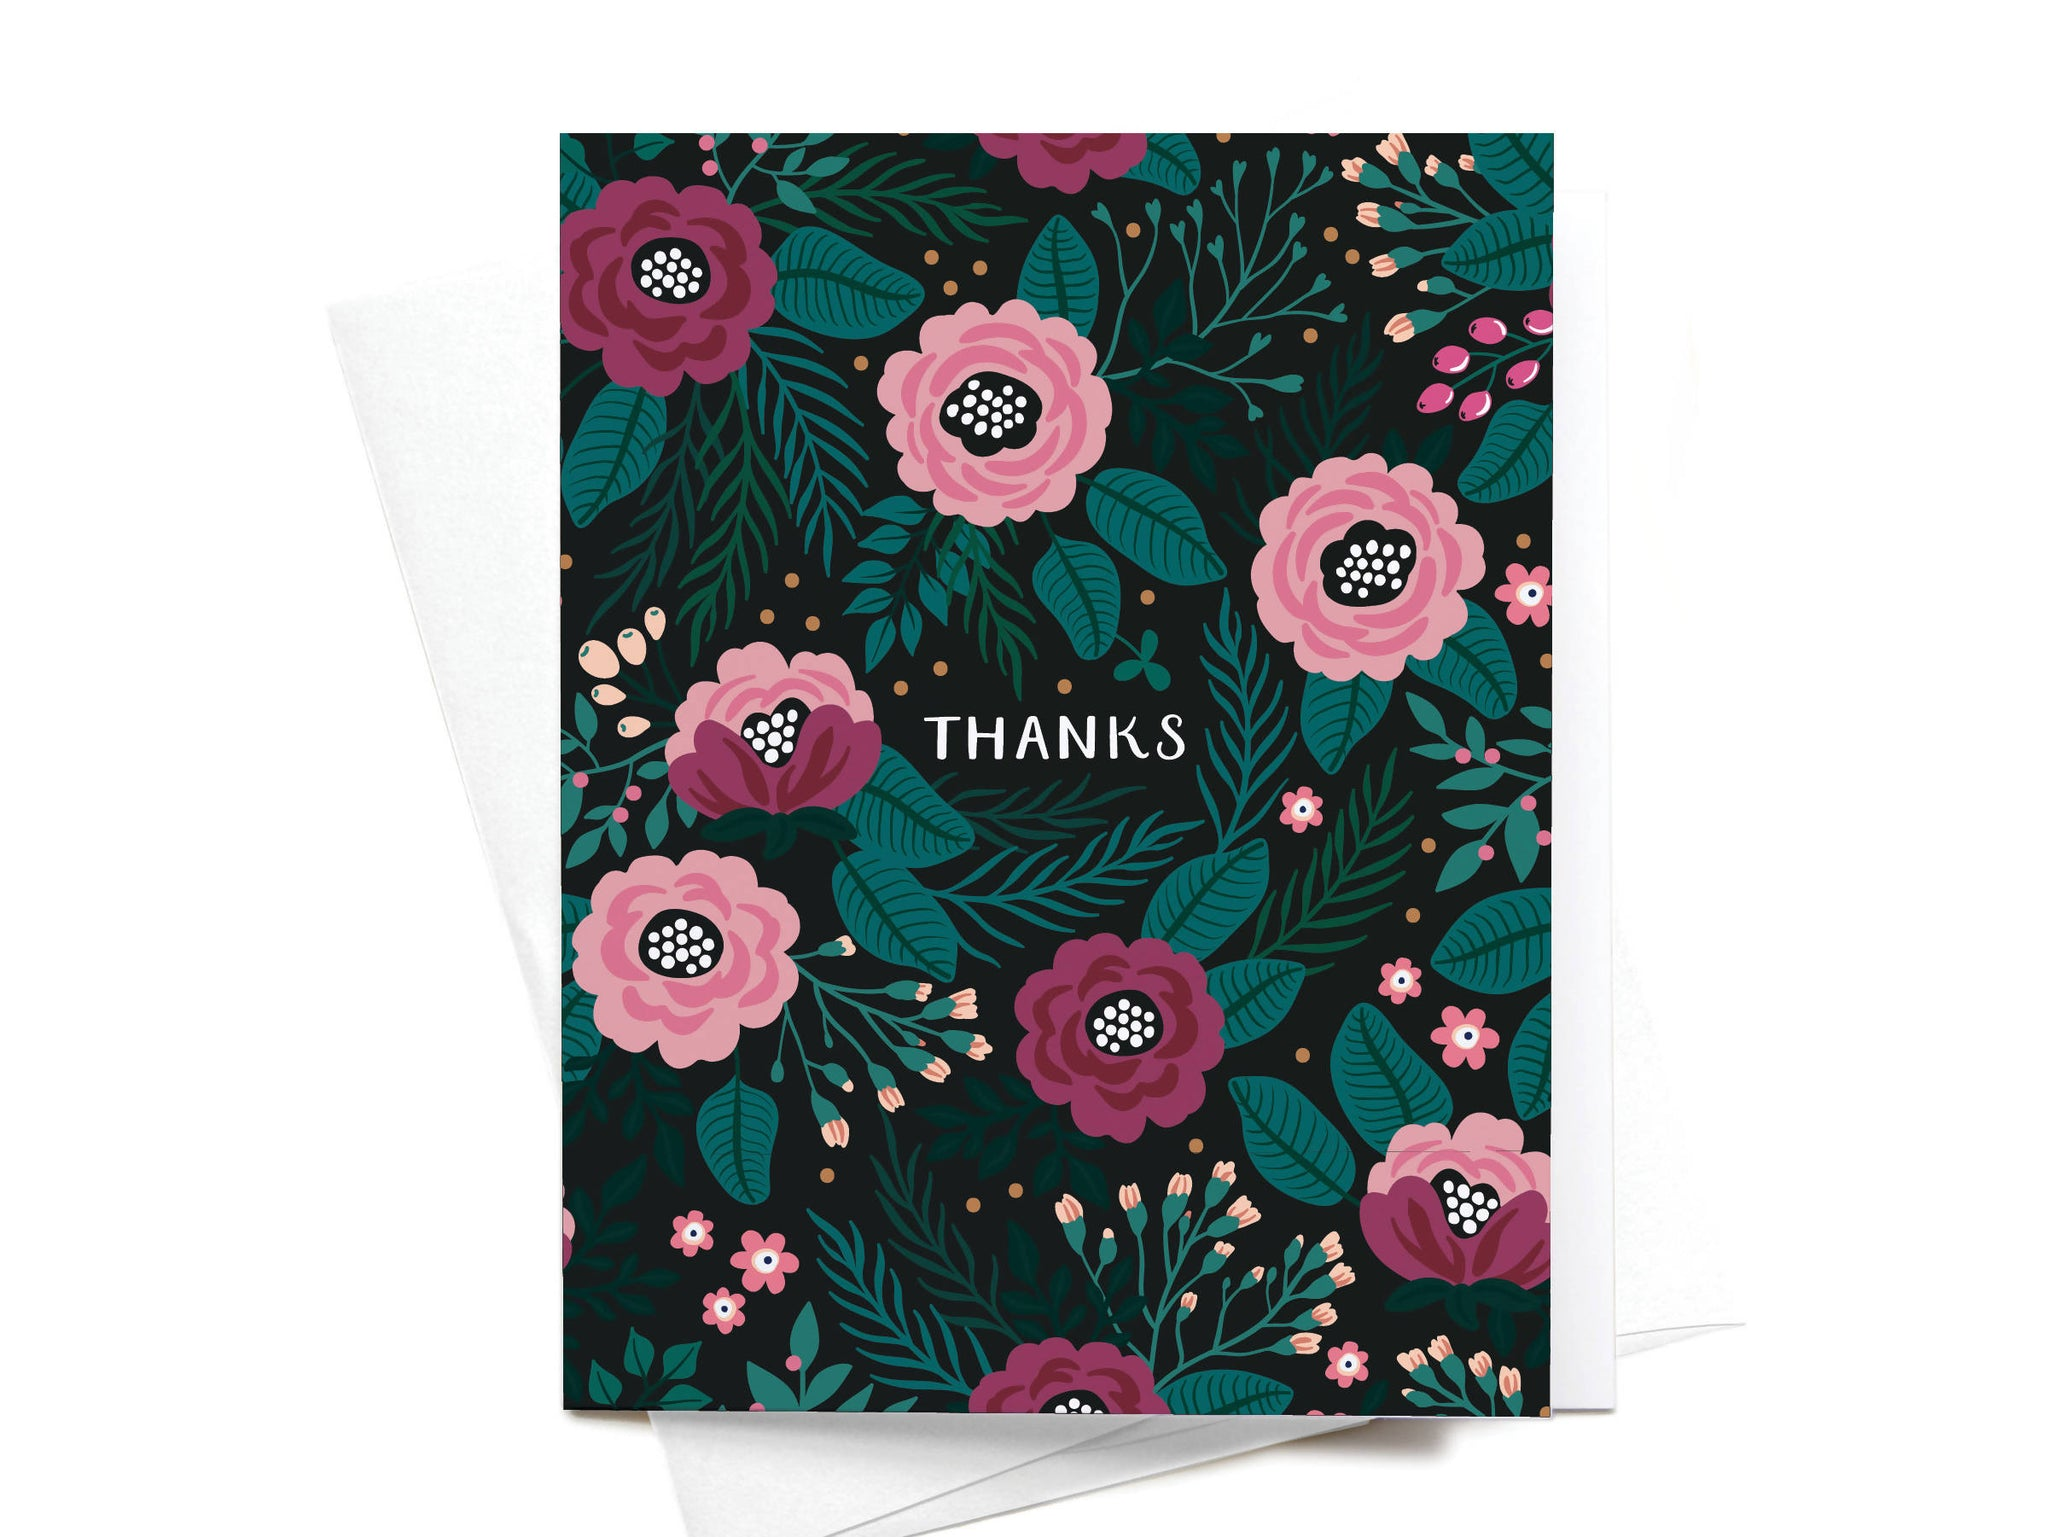 Thanks Floral Greeting Card